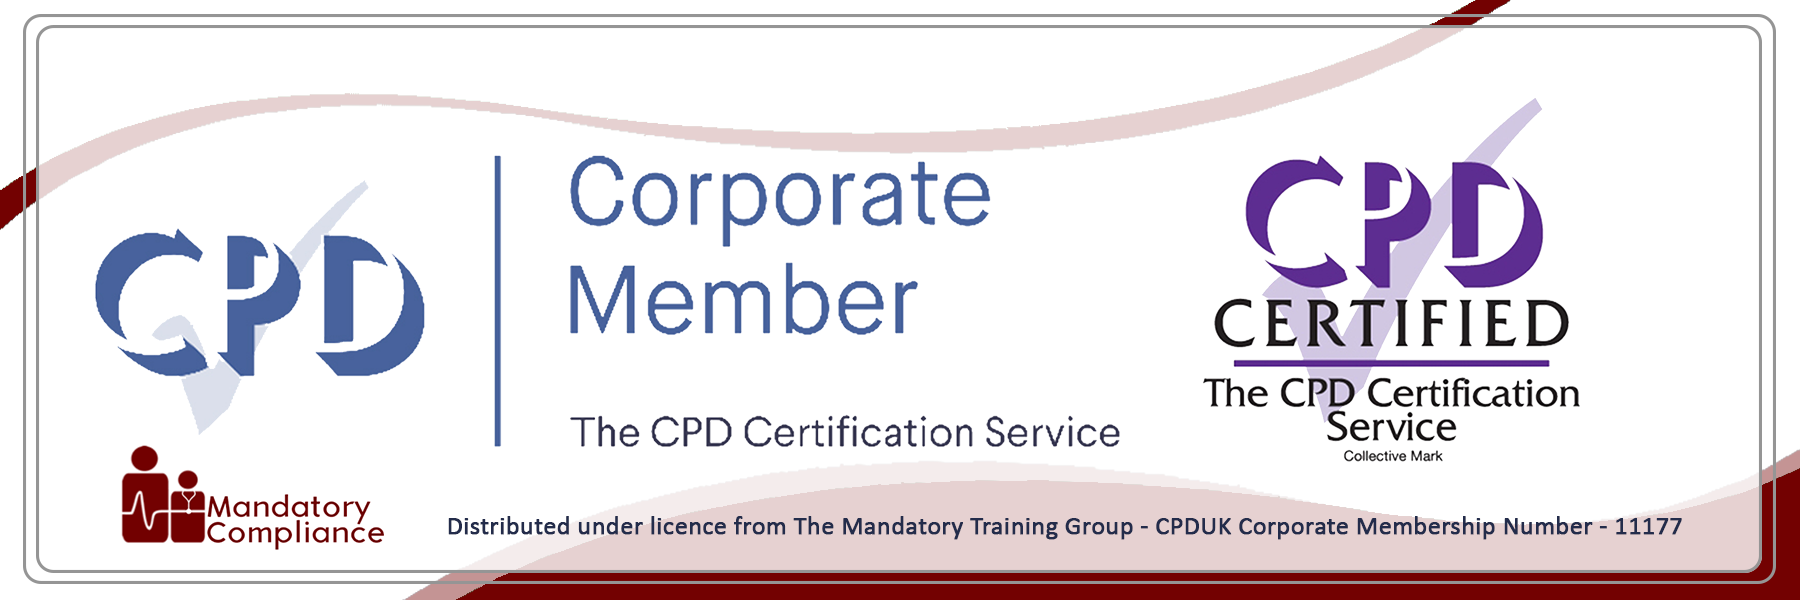 Clinical Governance – Level 3 - Online Training Course - CPDUK Accredited - Mandatory Compliance UK -